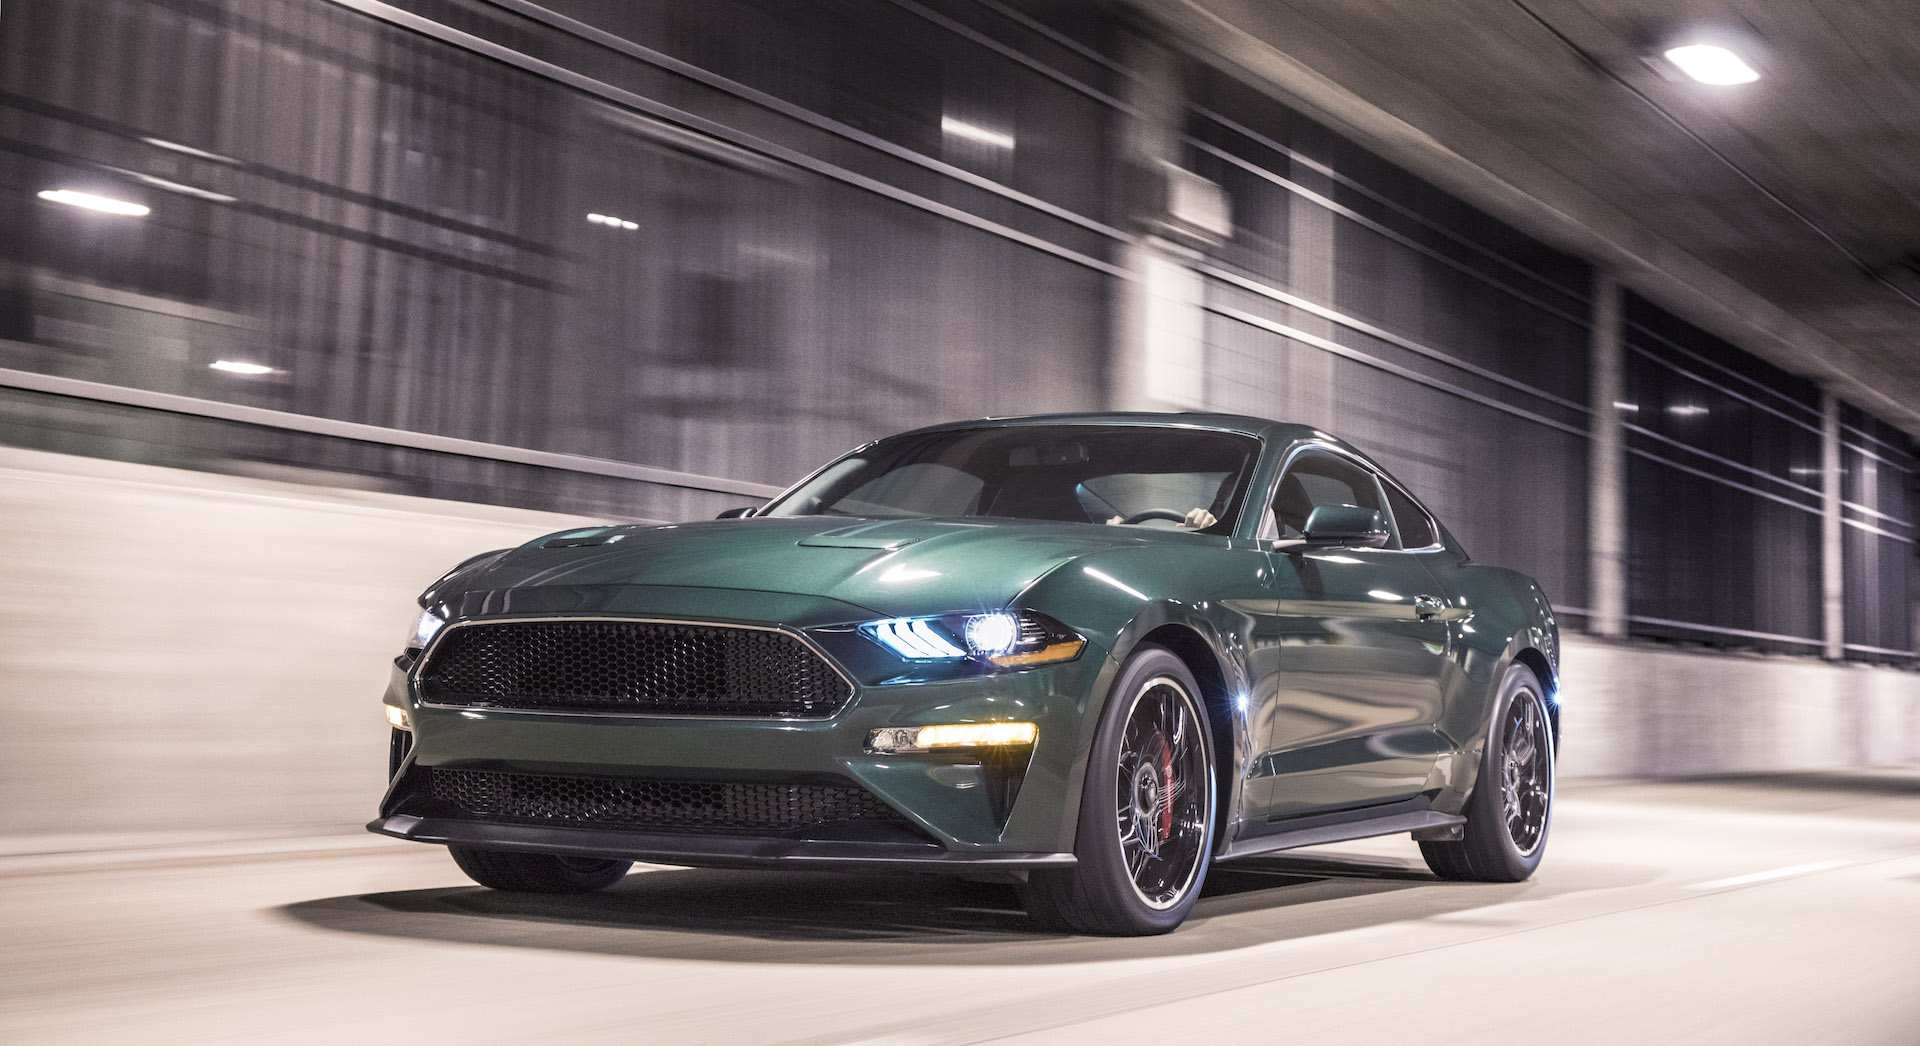 87 The Best 2019 Ford Mustang Bullitt Picture Release Date And Review Wallpaper by Best 2019 Ford Mustang Bullitt Picture Release Date And Review